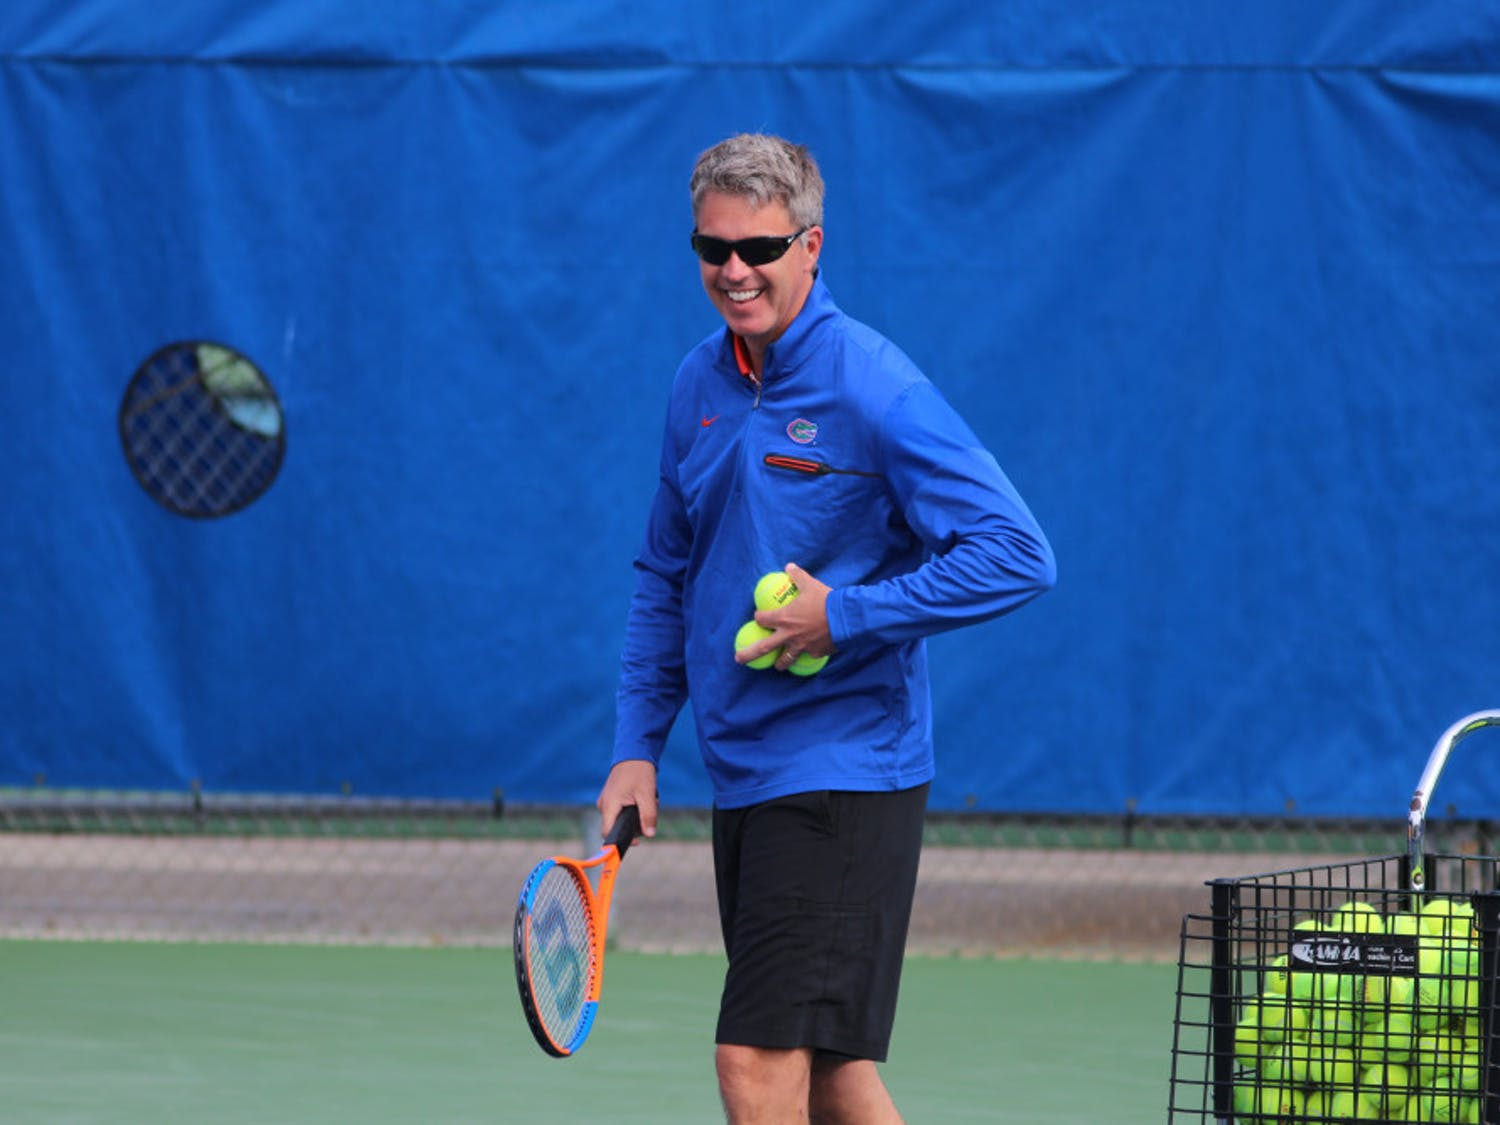 """UF women's tennis coach Roland Thornqvist is from Sweden and said that being from outside the U.S. helps him recruit international talent. """"I think that I understand what (international players) are going through when they get here,"""" he said."""